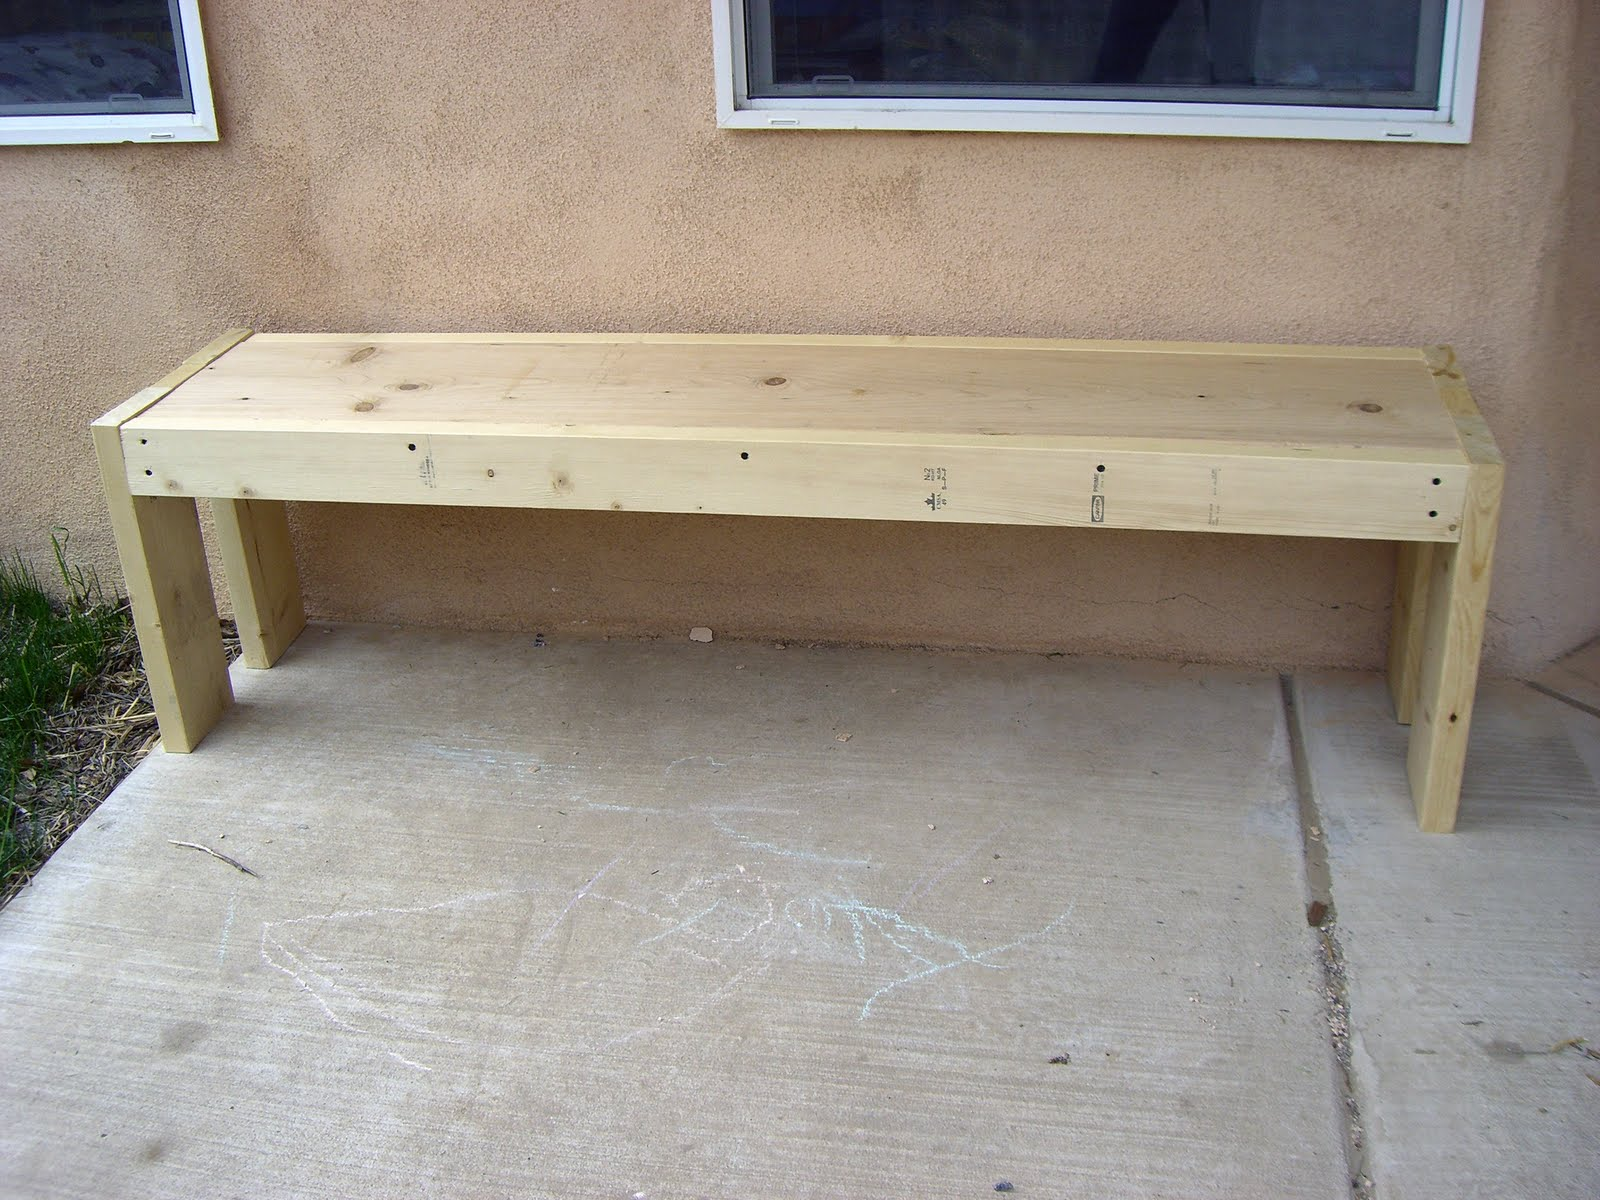 Enjoyable Diy Wood Planter Bench Projects Wood Chair Design Plans Caraccident5 Cool Chair Designs And Ideas Caraccident5Info